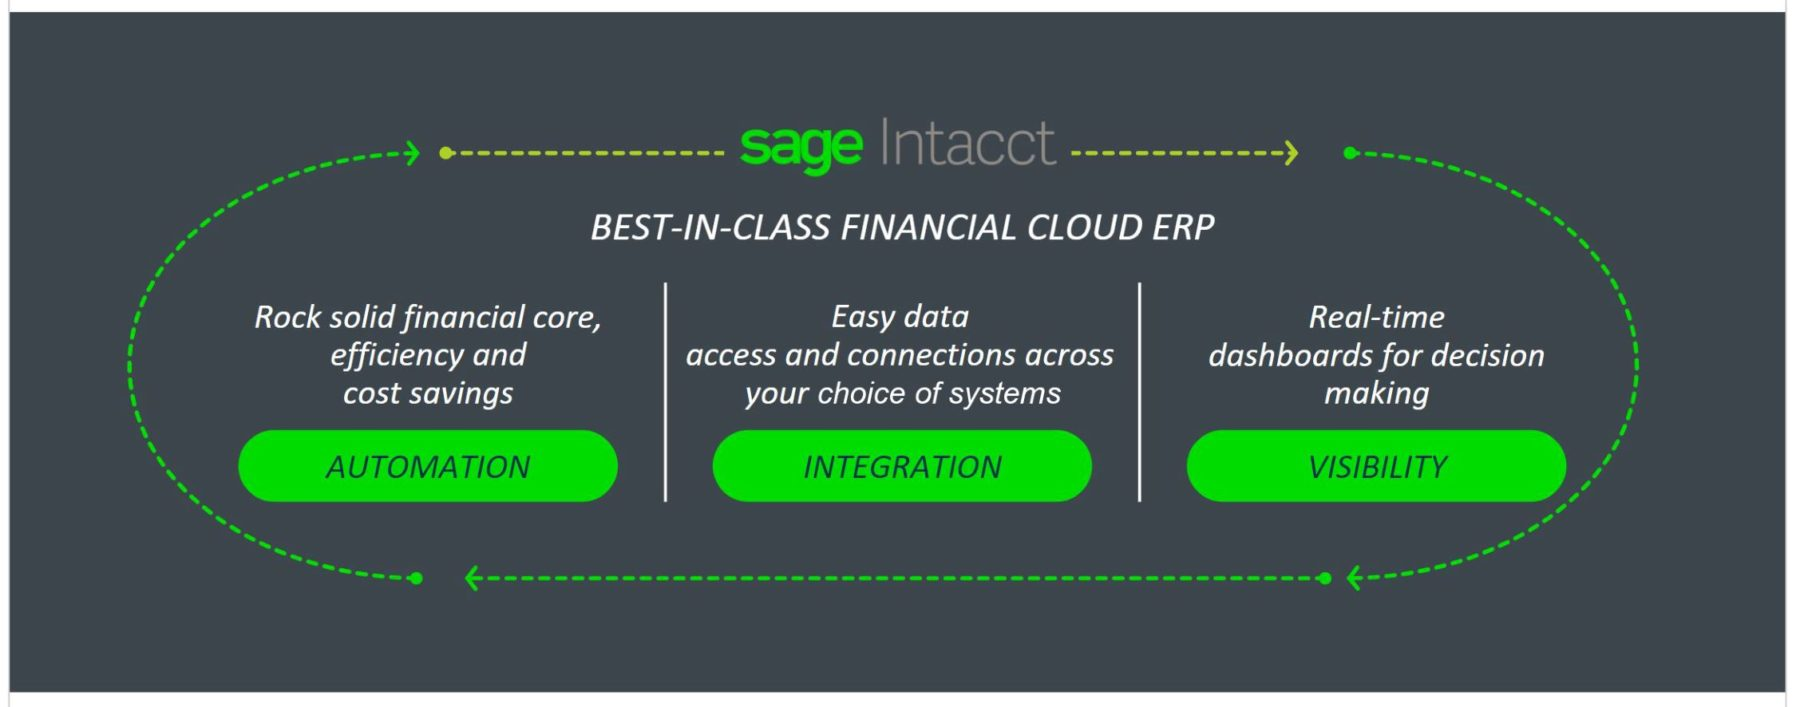 Sage Intacct 3 Key features: Automation, integration, visibility